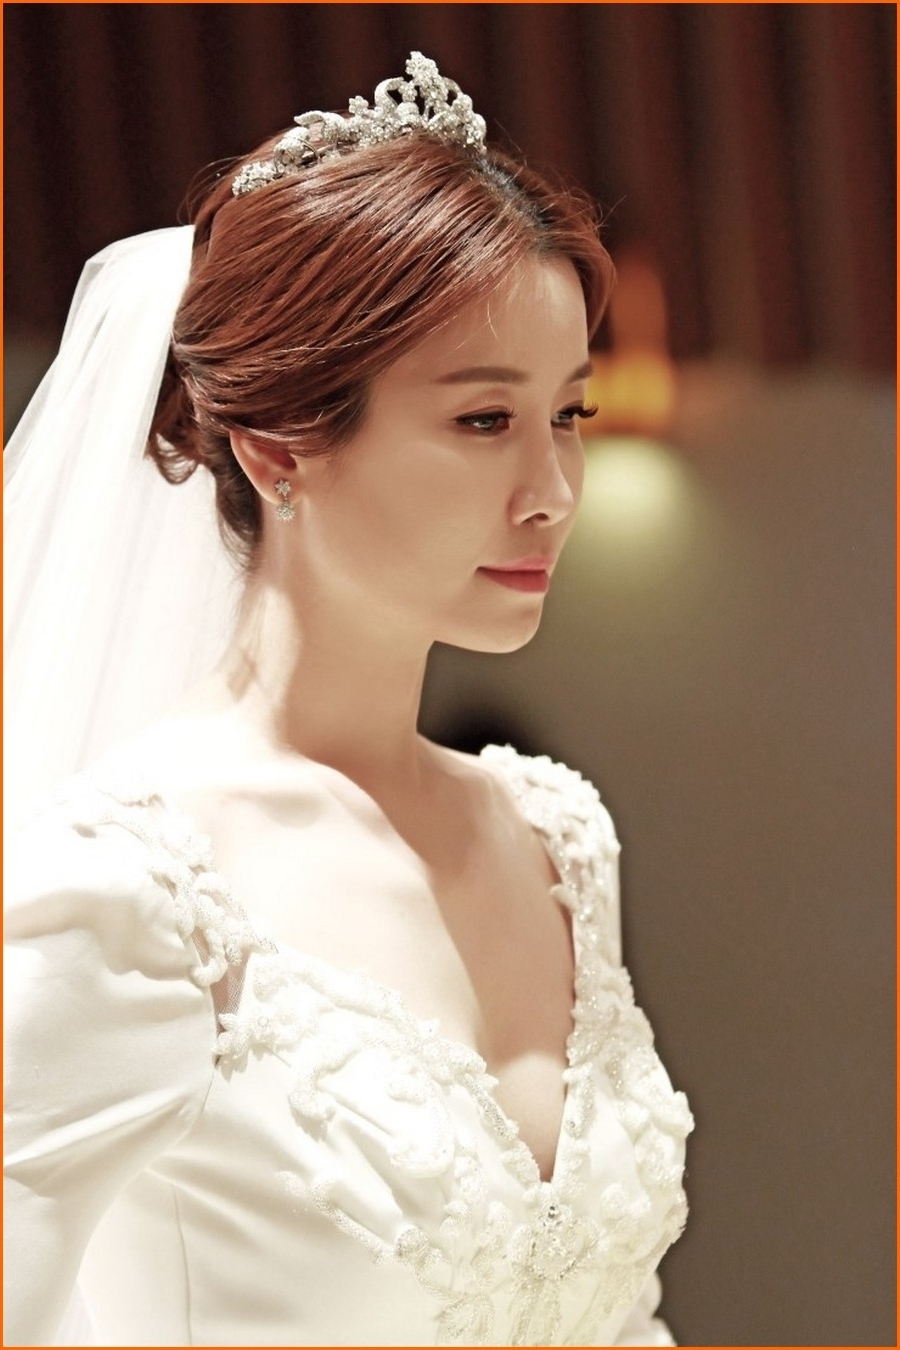 Newest Korean Wedding Hairstyles For Korean Wedding Hairstyle Inspiration 2018 (4) – Hairstyles, Easy (View 6 of 15)